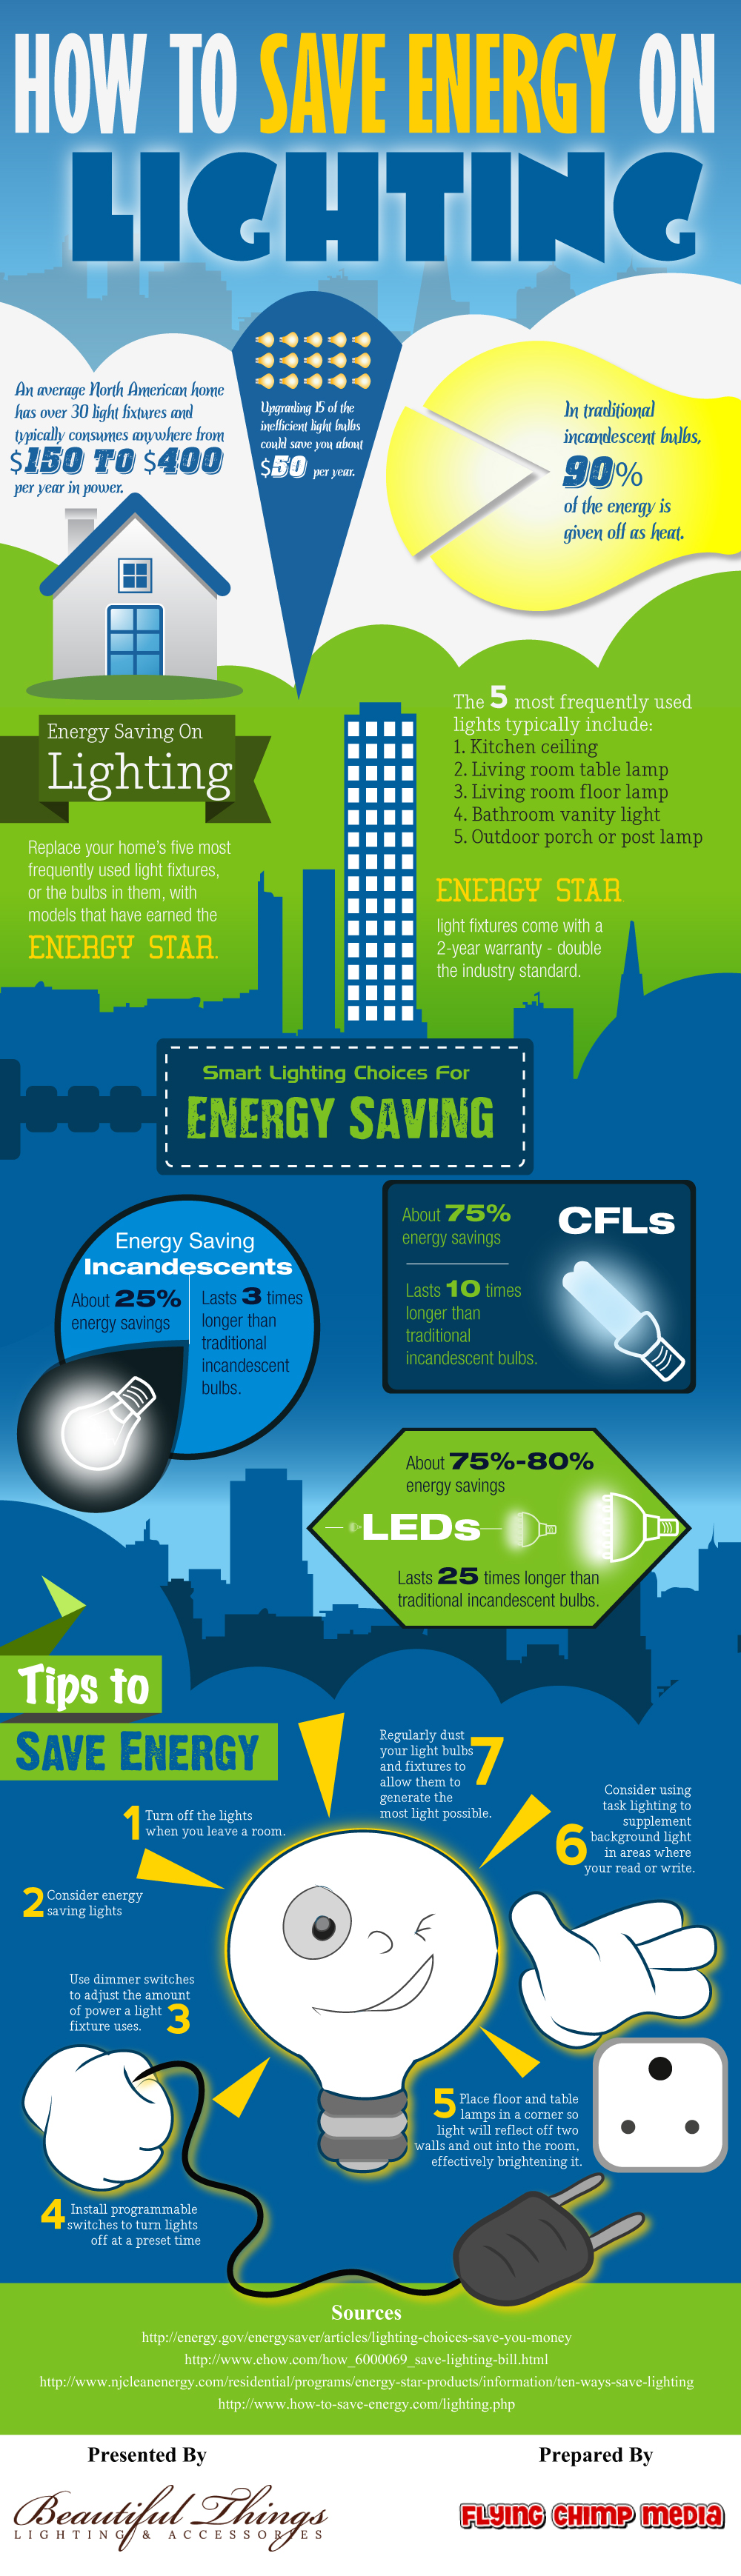 How To Save Energy On Lighting